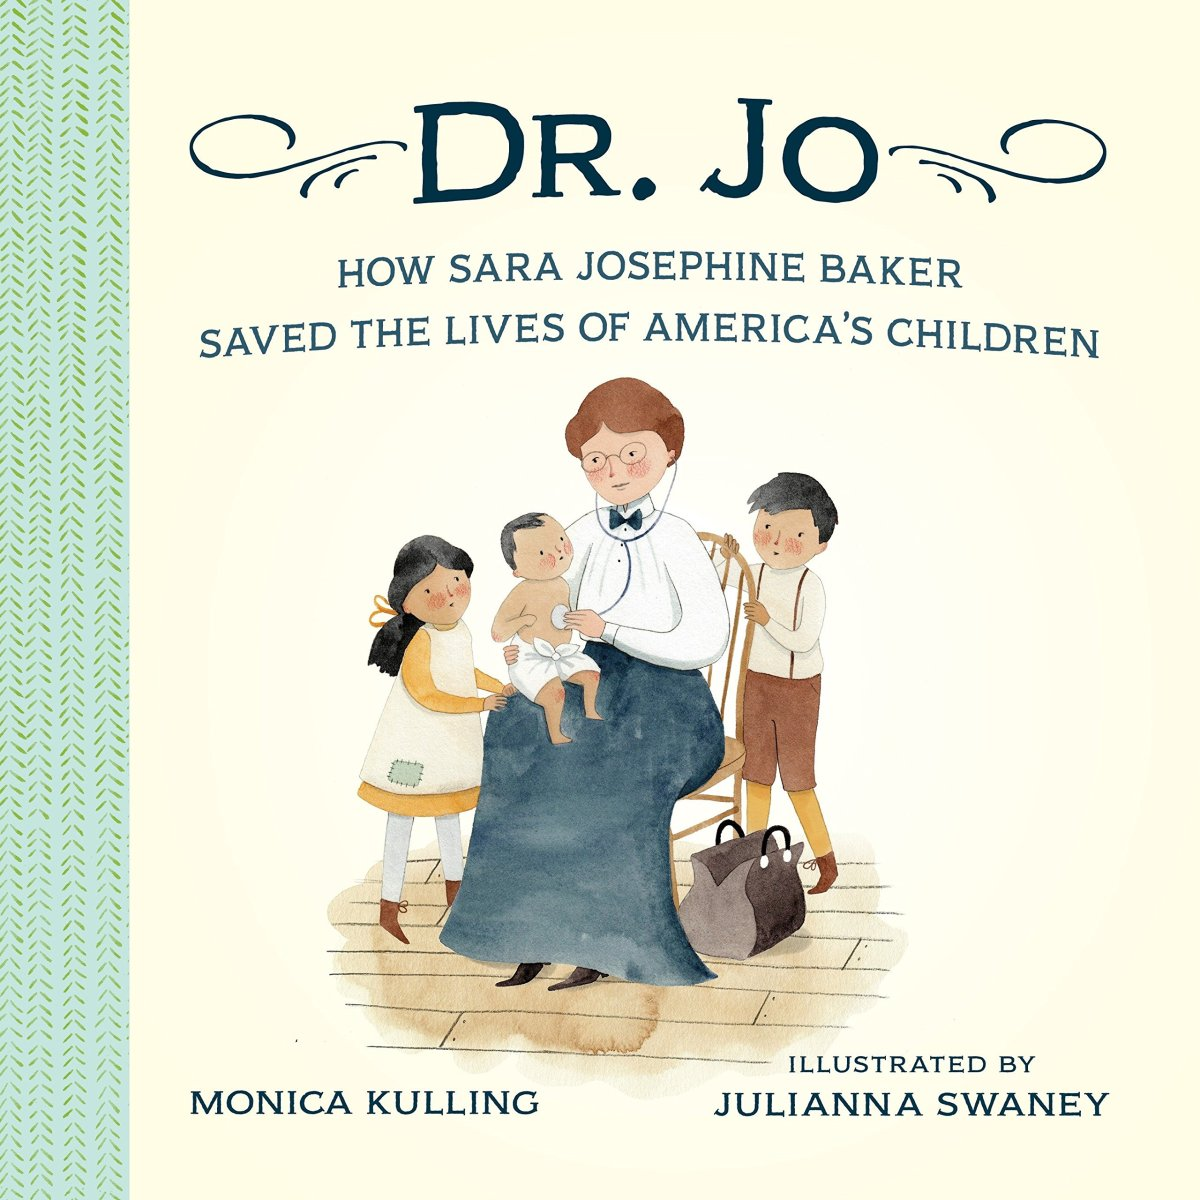 dr. jo cover image